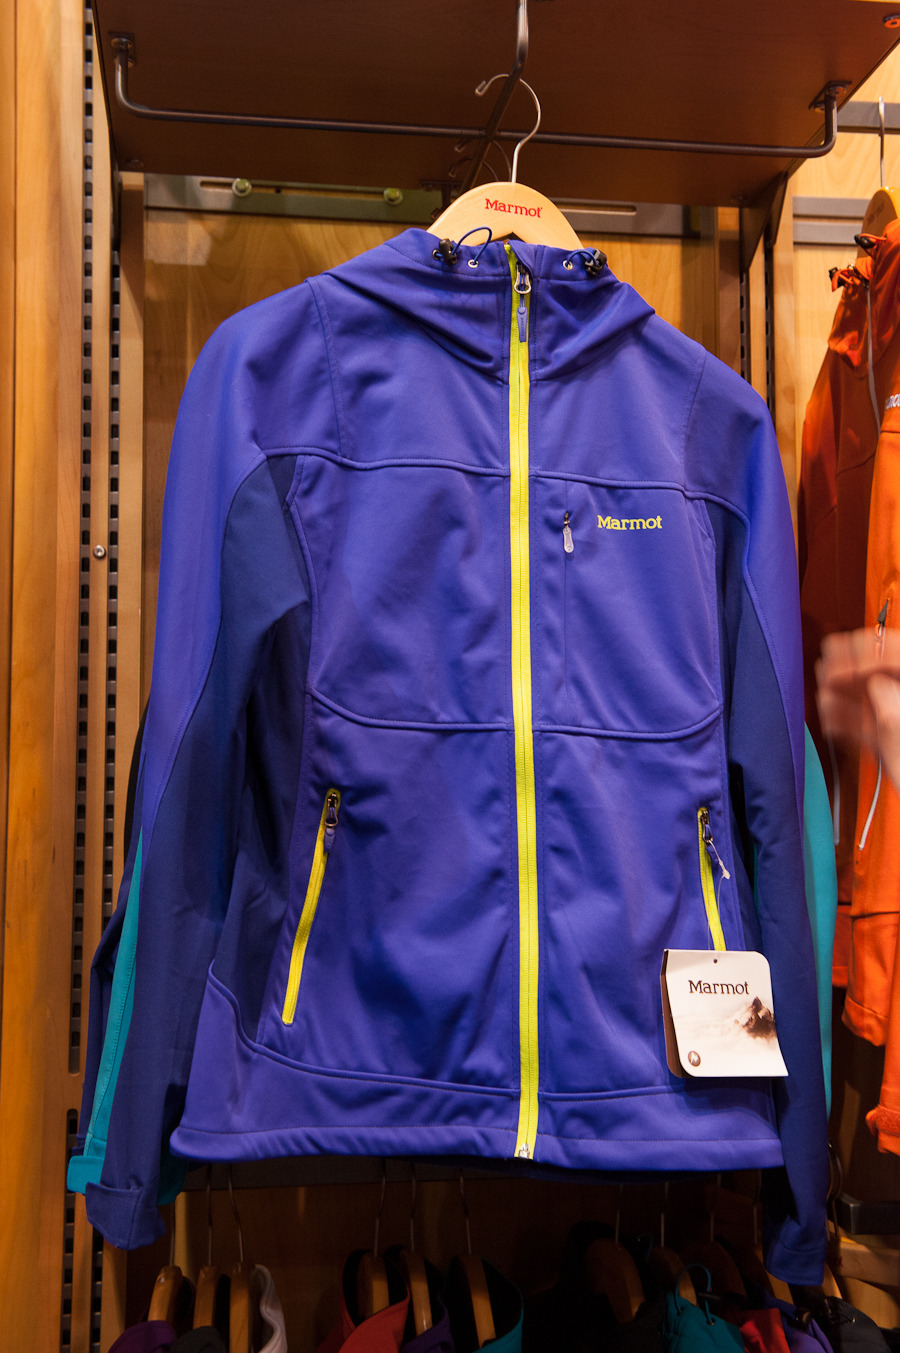 The Marmot Prodigy M2 softshell jacket features a hybrid GORE-TEX® Wind Blocker with stretch panels down the arms.